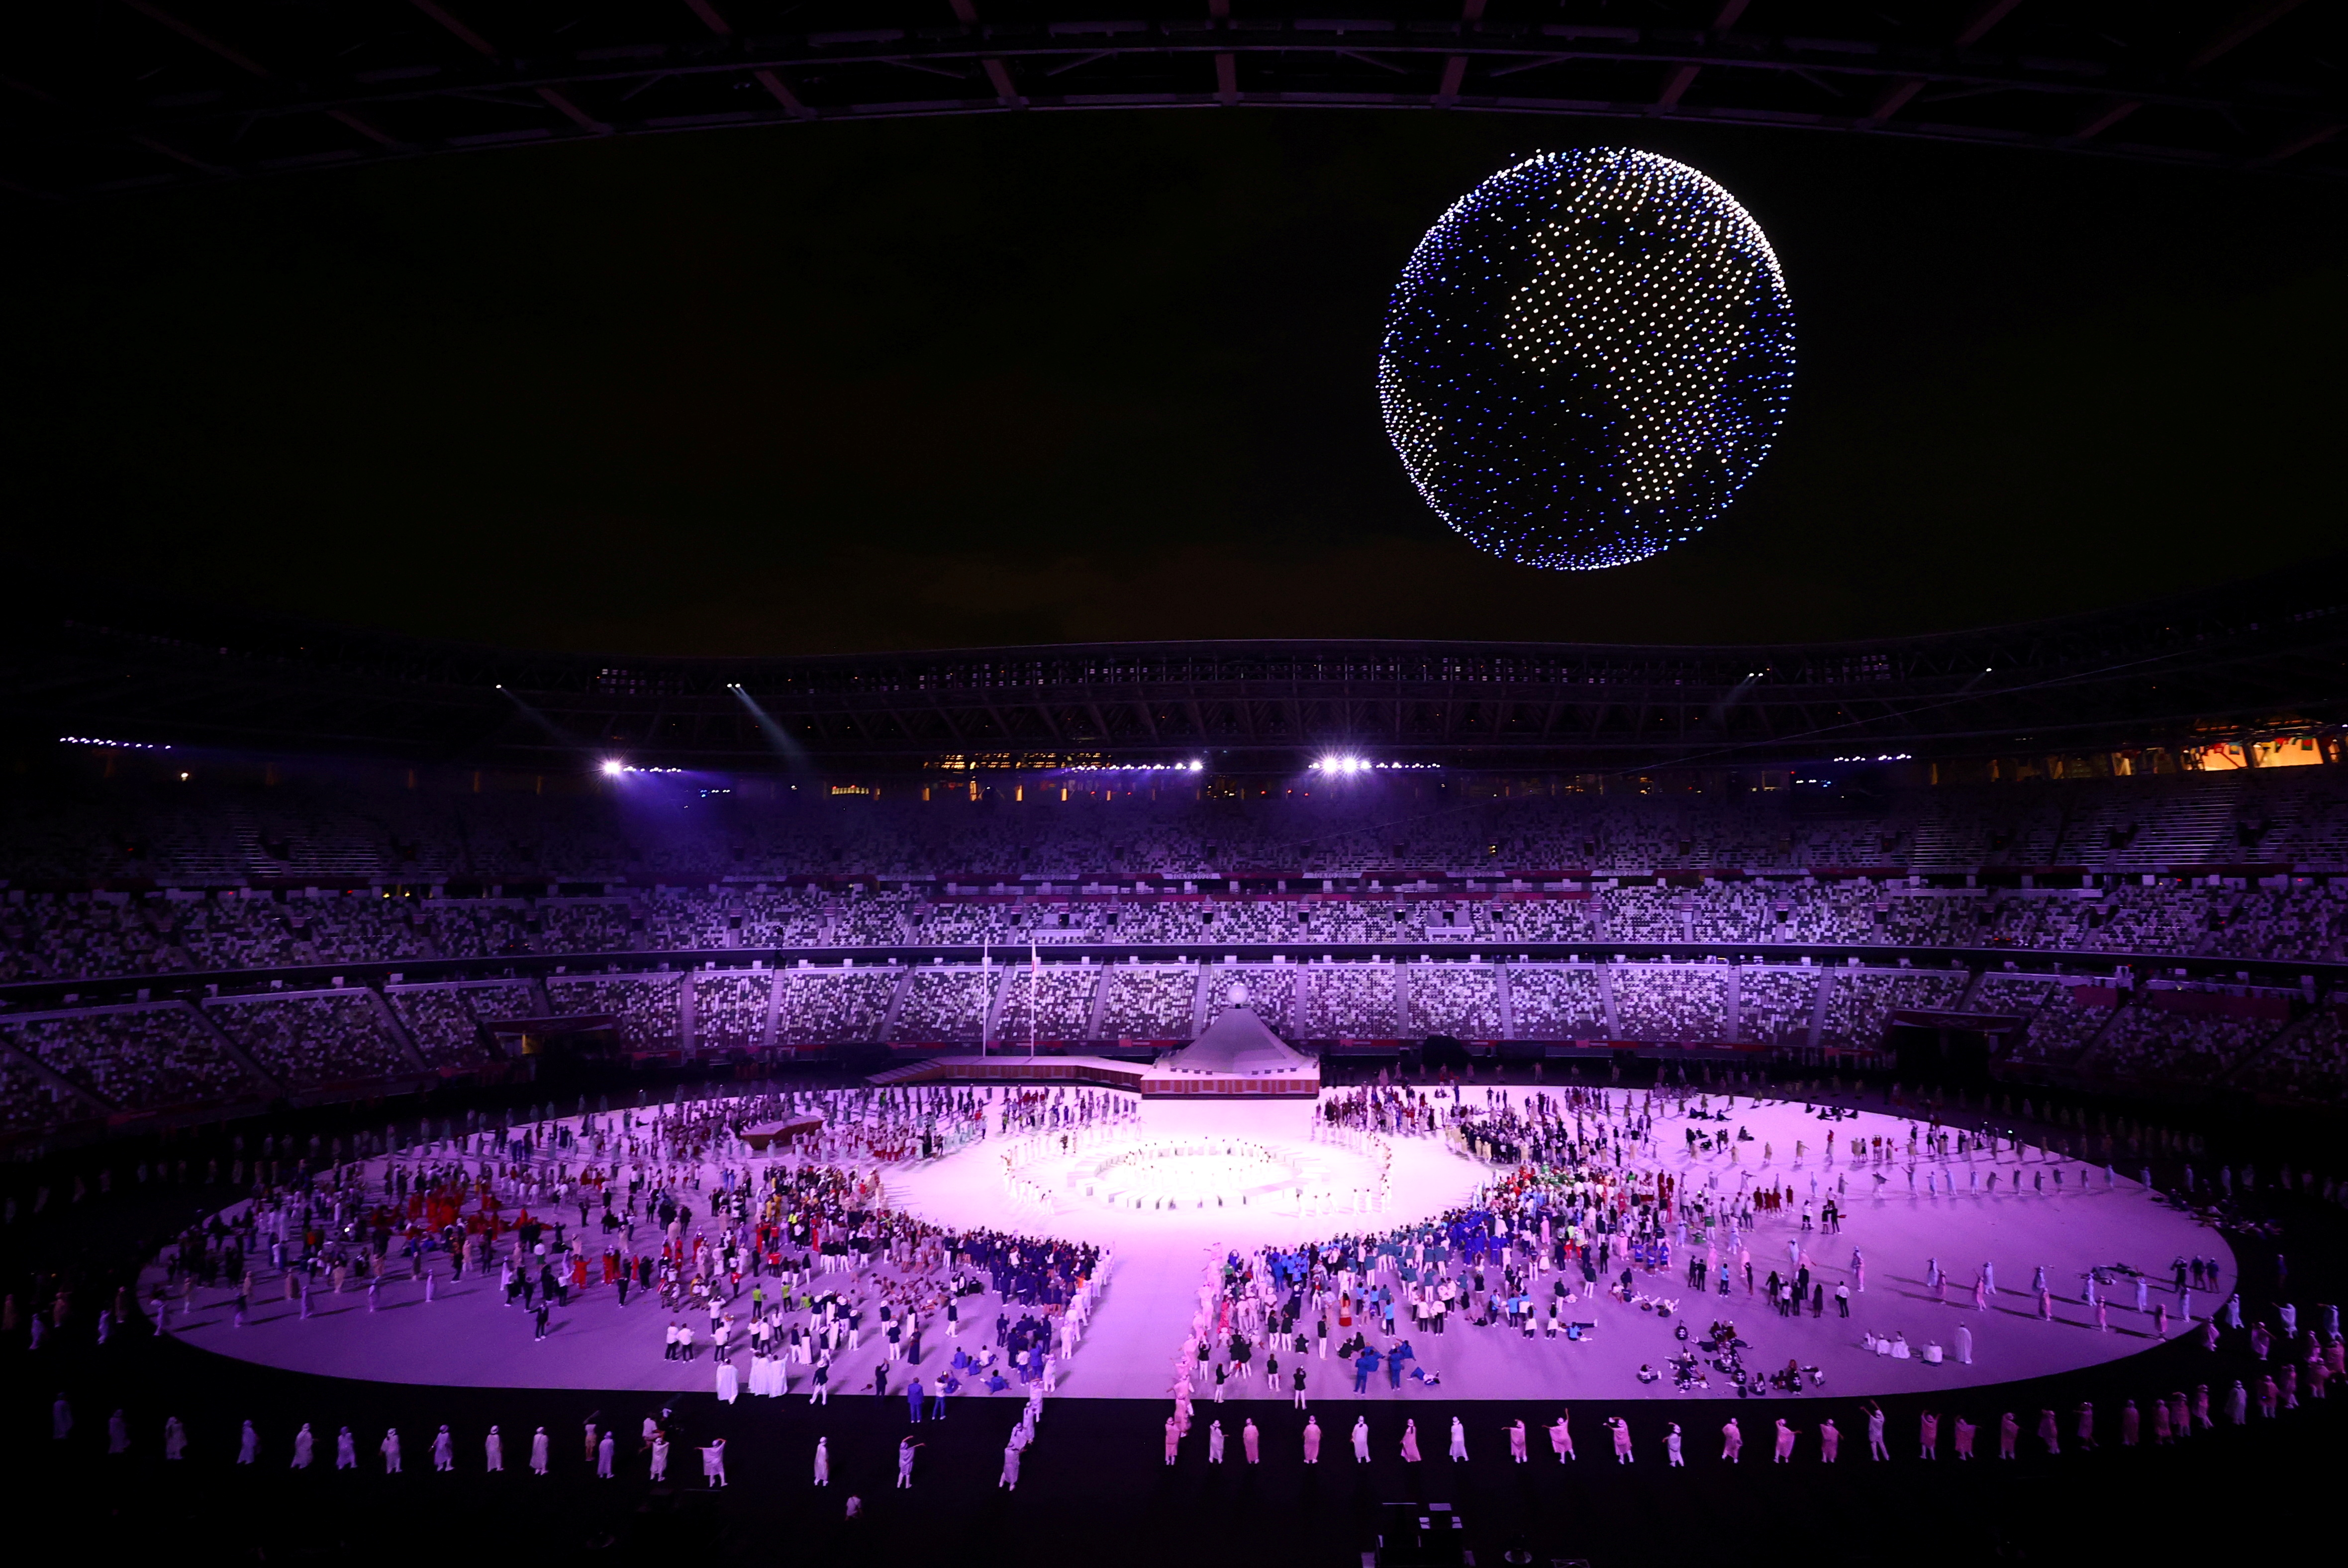 The Tokyo 2020 Olympics Opening Ceremony - Olympic Stadium, Tokyo, Japan - July 23, 2021. Drones are seen above the stadium during the opening ceremony REUTERS/Marko Djurica/File Photo